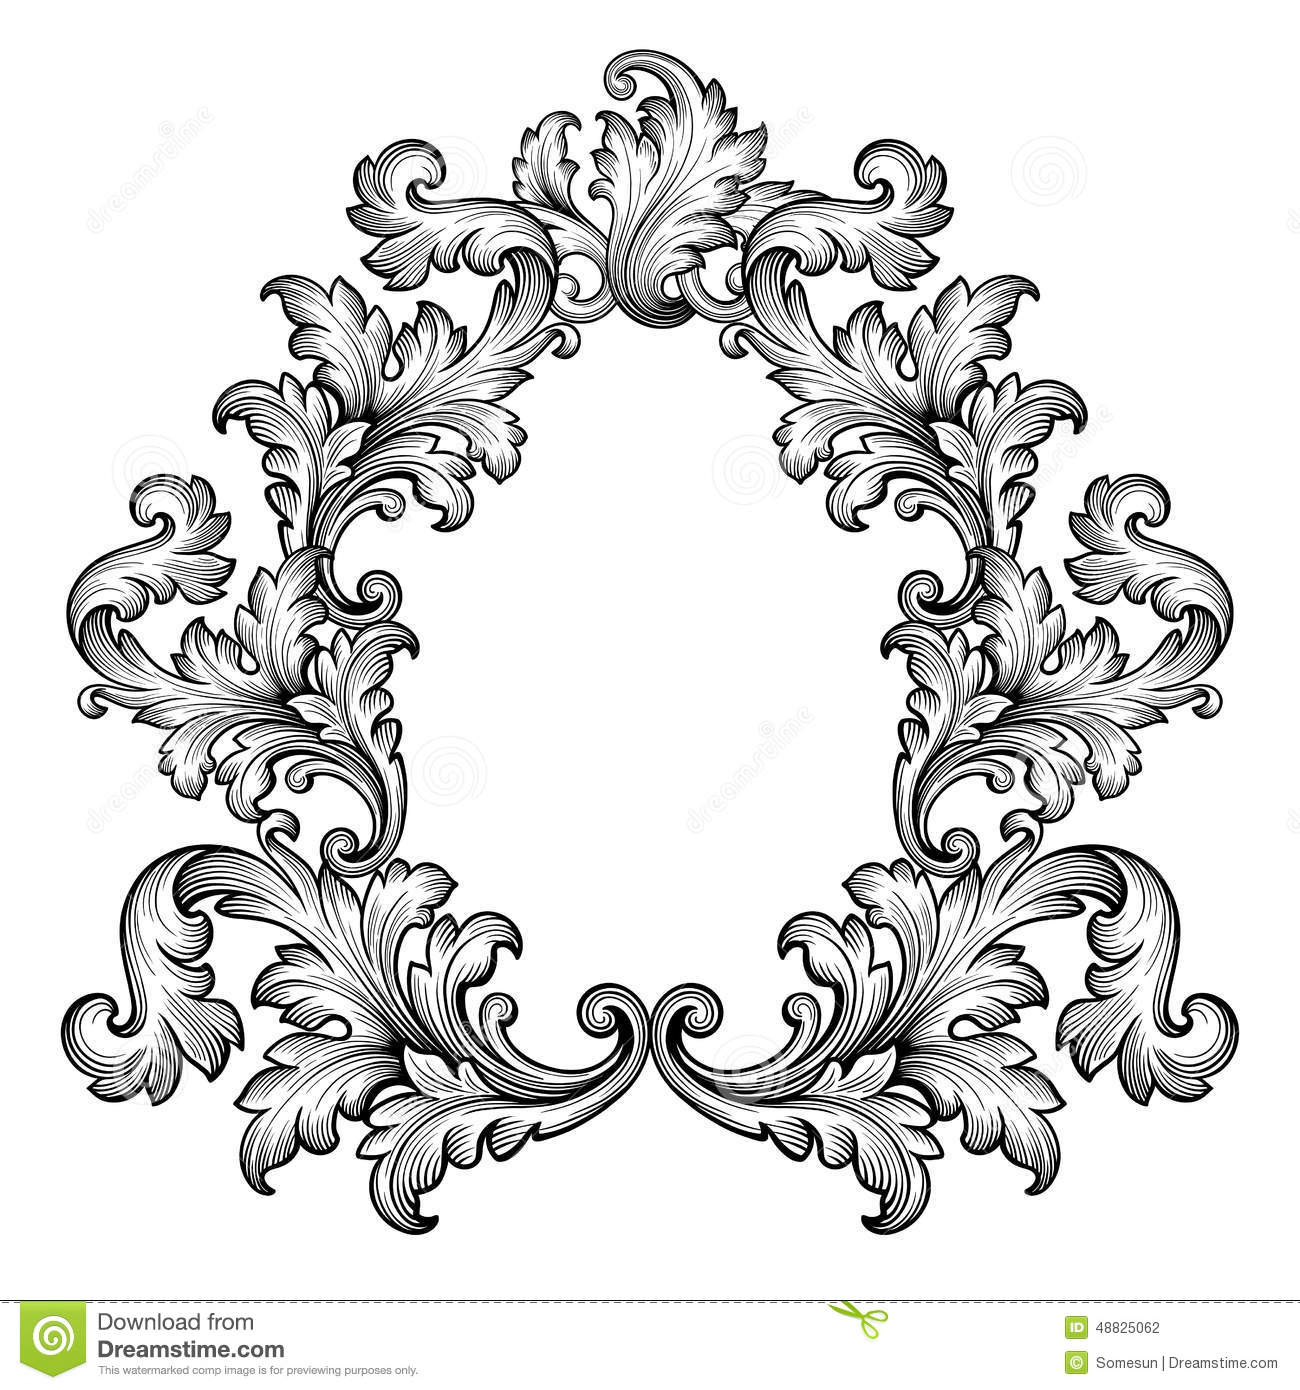 I Designed A Vintage Looking Border Art For You To Use In: Vintage Baroque Frame Scroll Ornament Vector Stock Vector